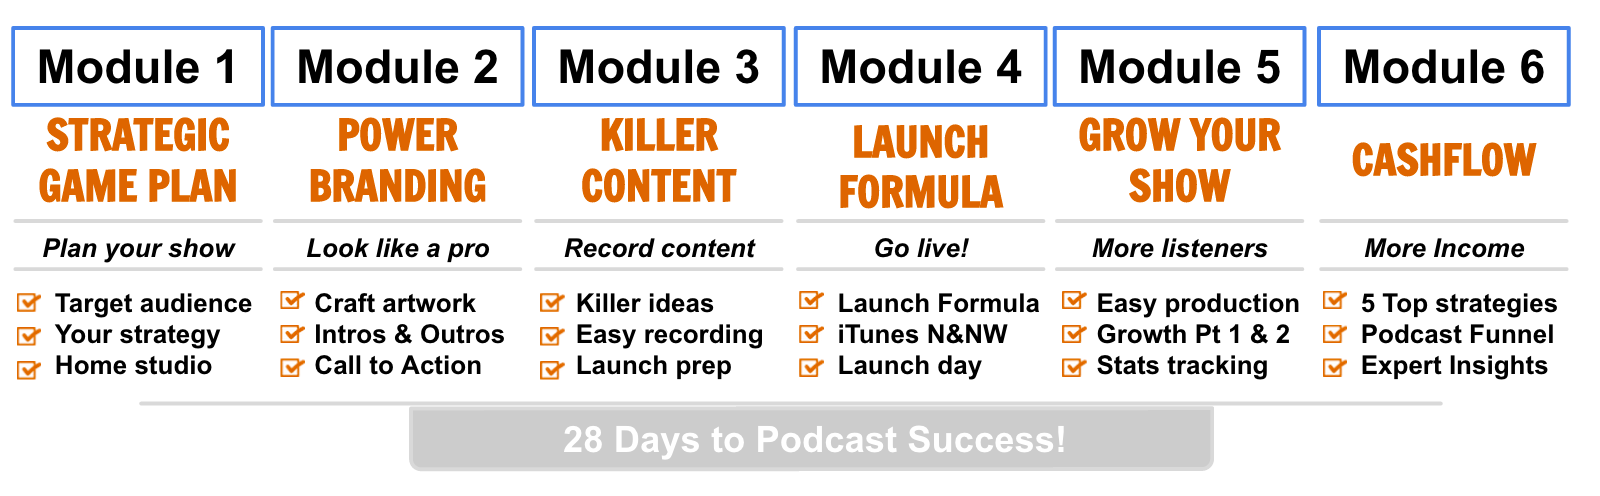 Cashflow Podcasting Course: Start a podcast for business